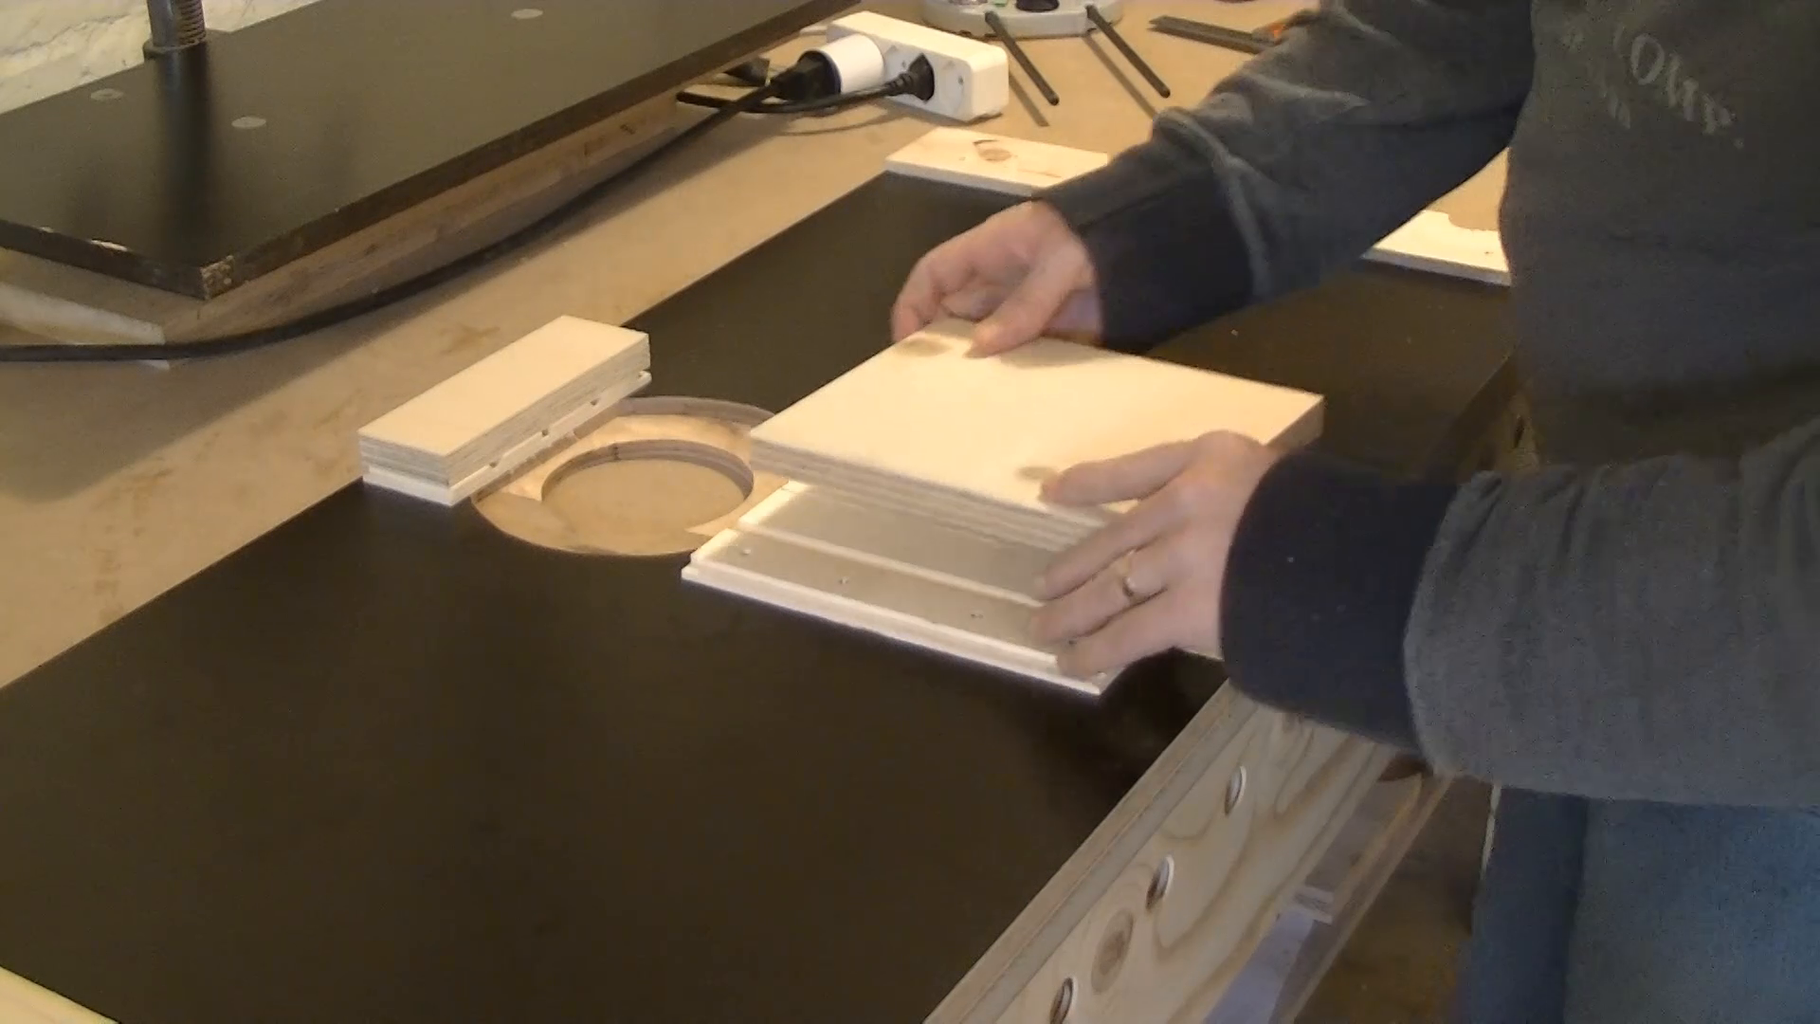 Clamping Boards for the Fastening System